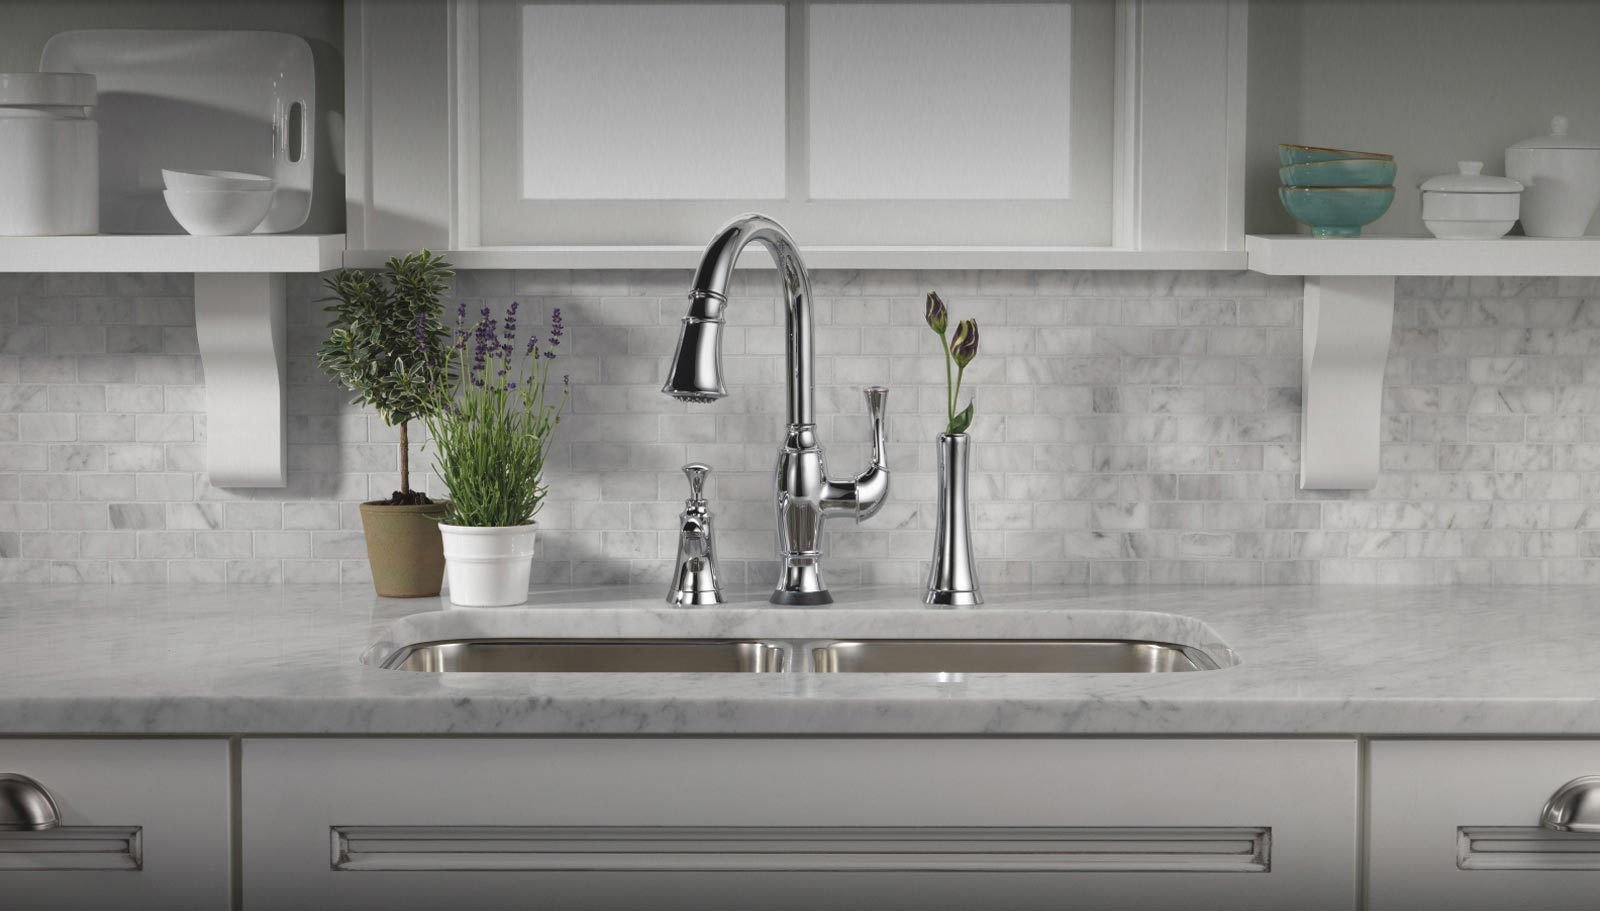 Brands of Faucets | Brizo Tresa Kitchen Faucet | Brizo Kitchen Faucets